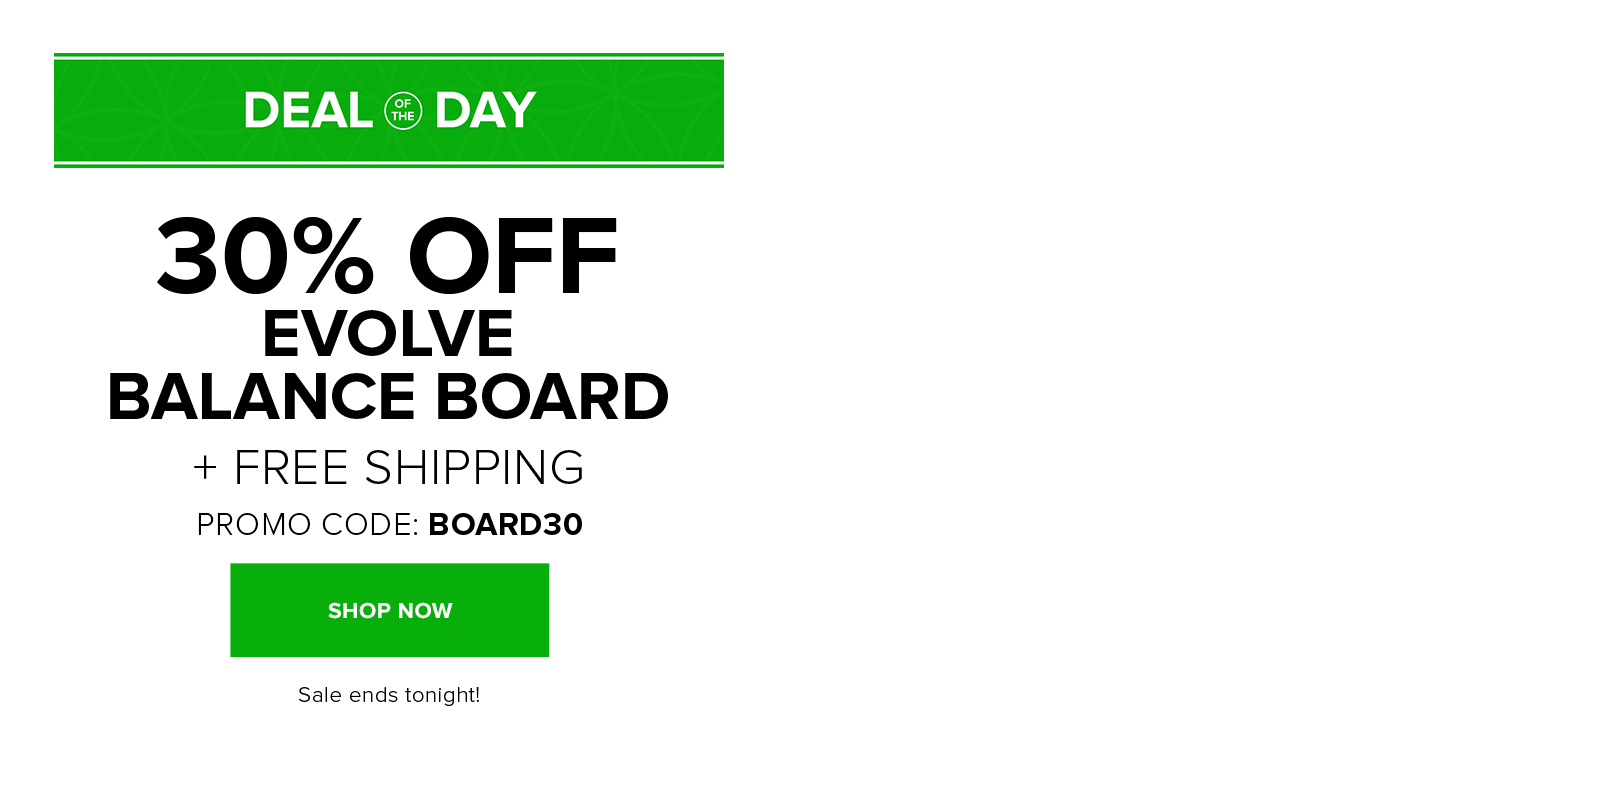 30% off the Evolve Balance Board with code BOARD30